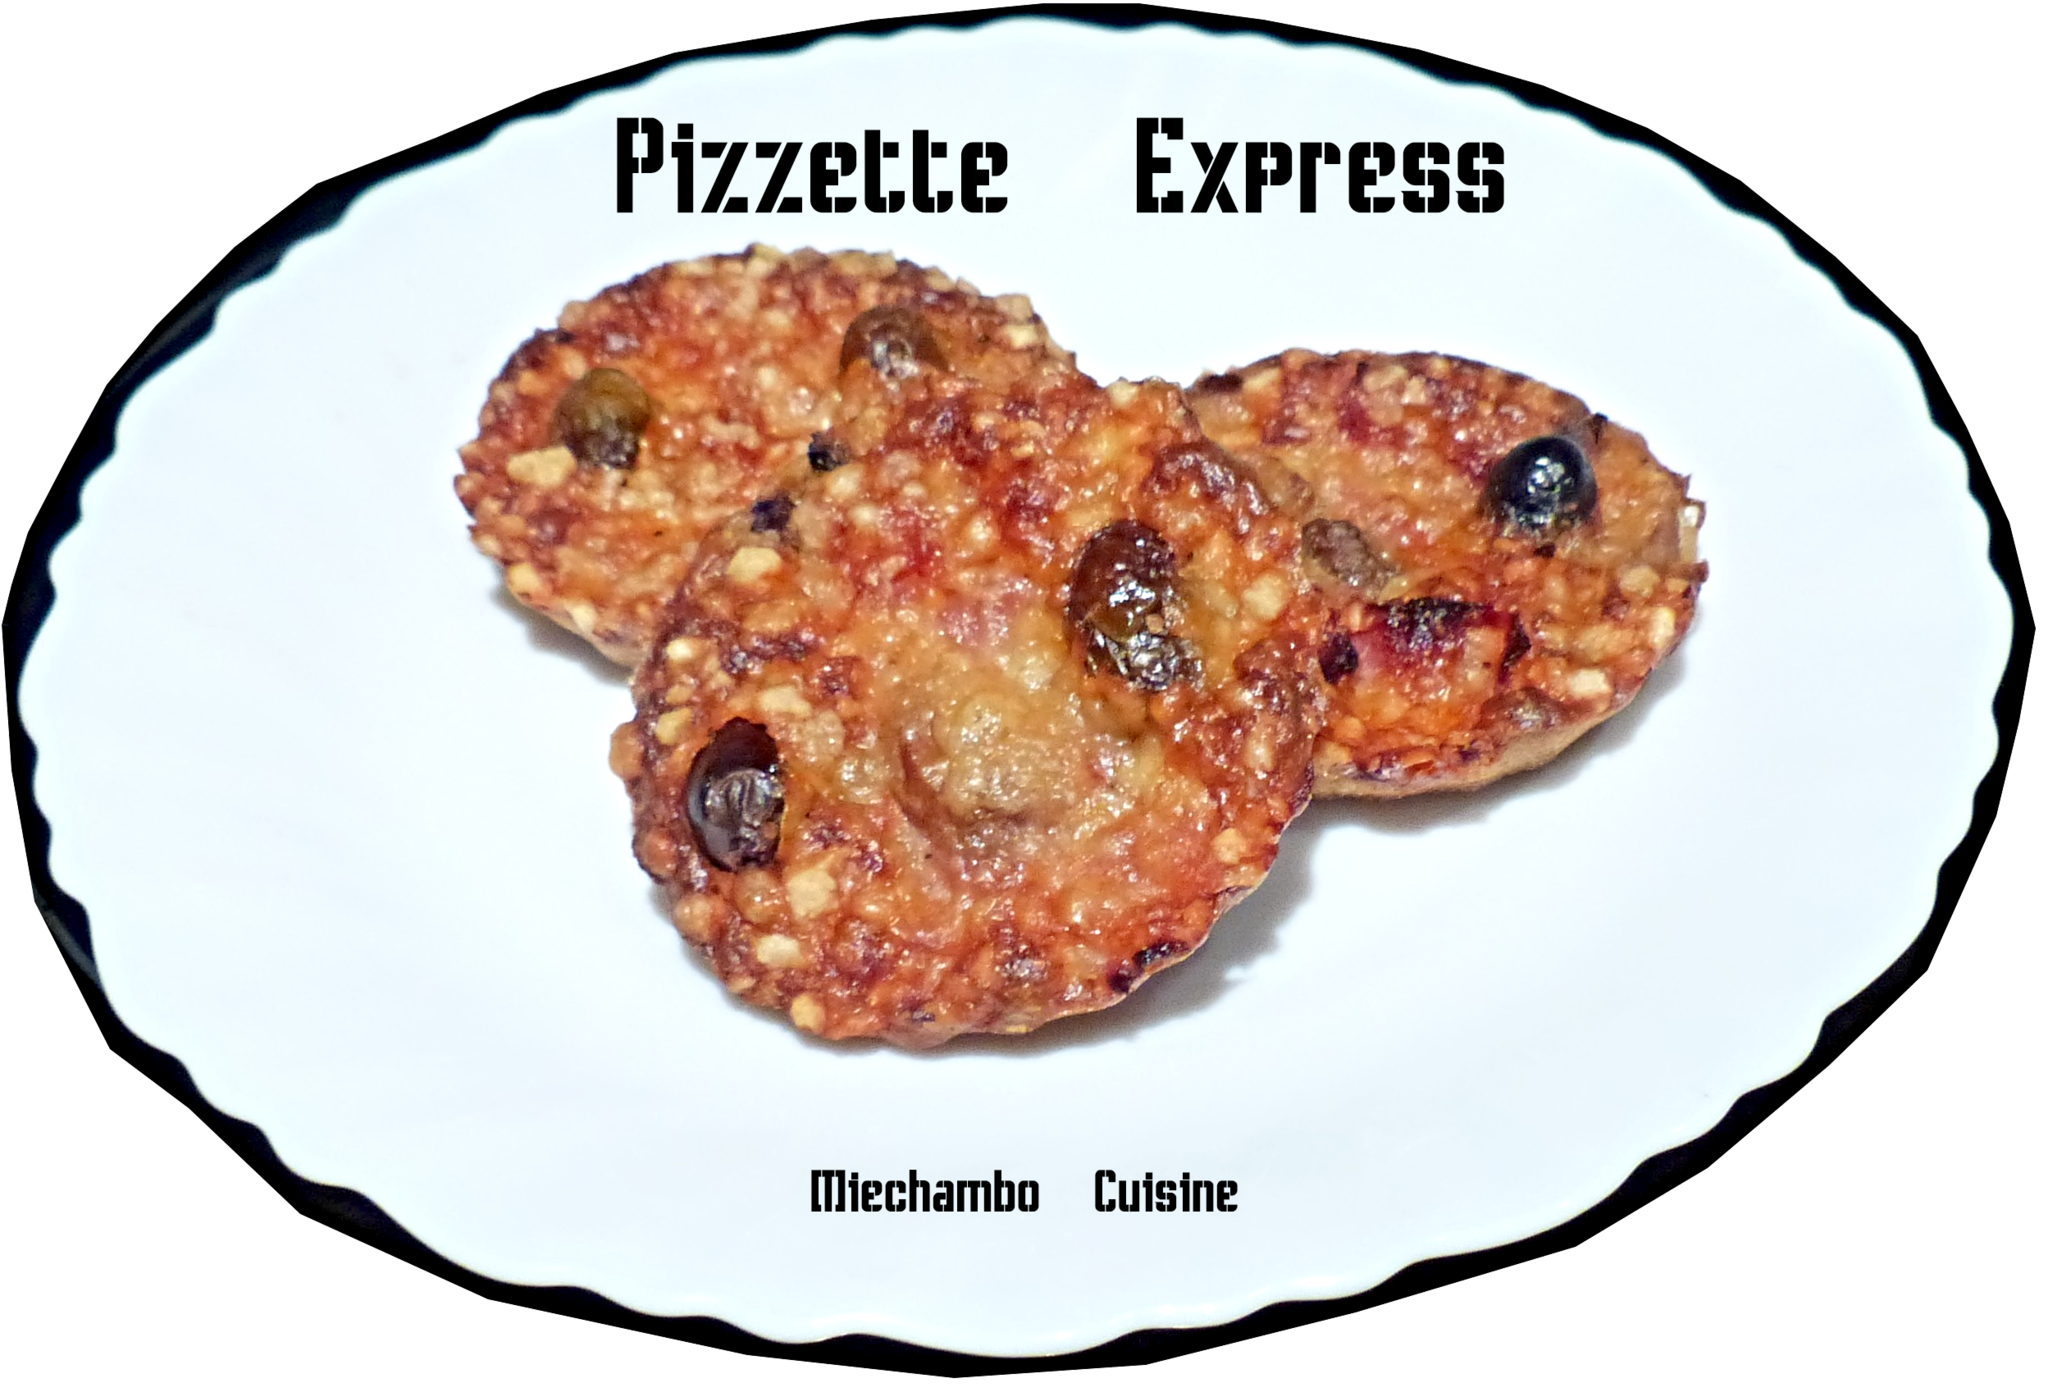 Pizzettes express